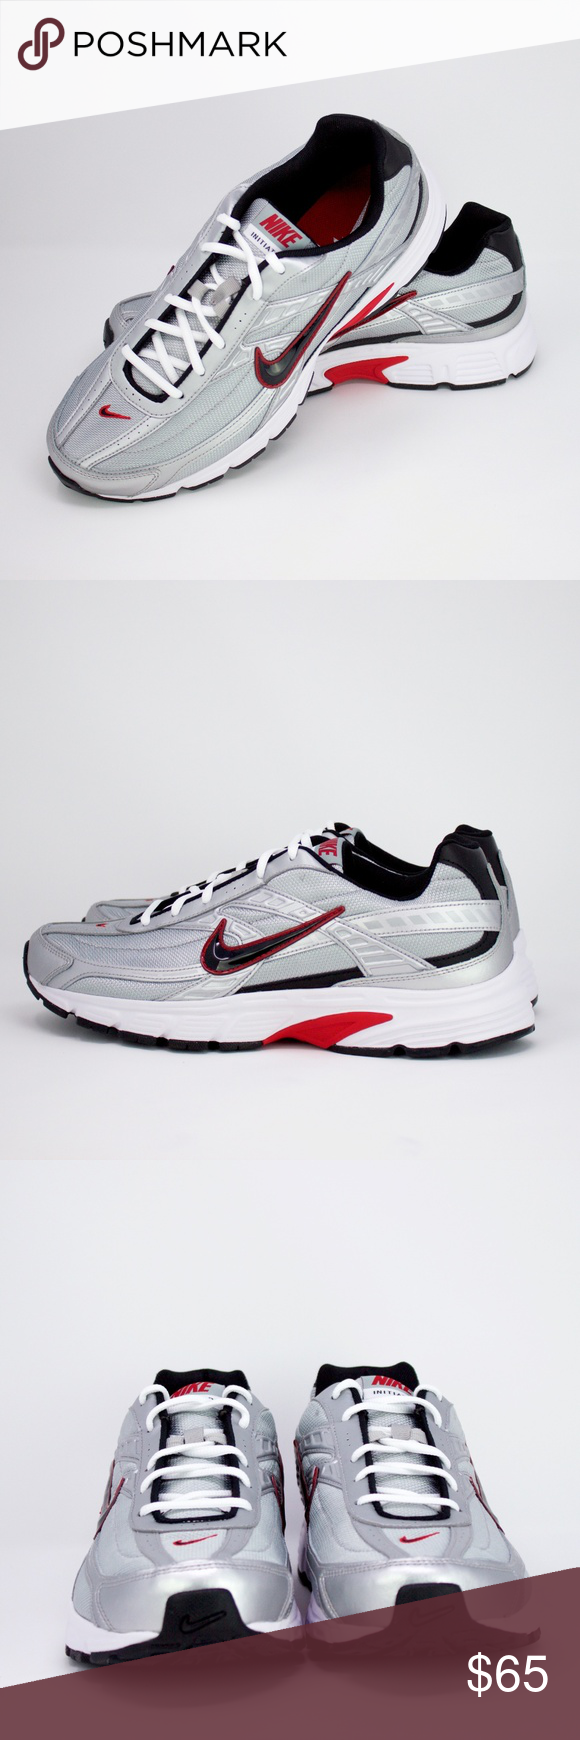 Men s Nike Initiator Trainers 12 Silver Red NEW Men s Nike Initiator  Trainers size 12 in 27add9d4d